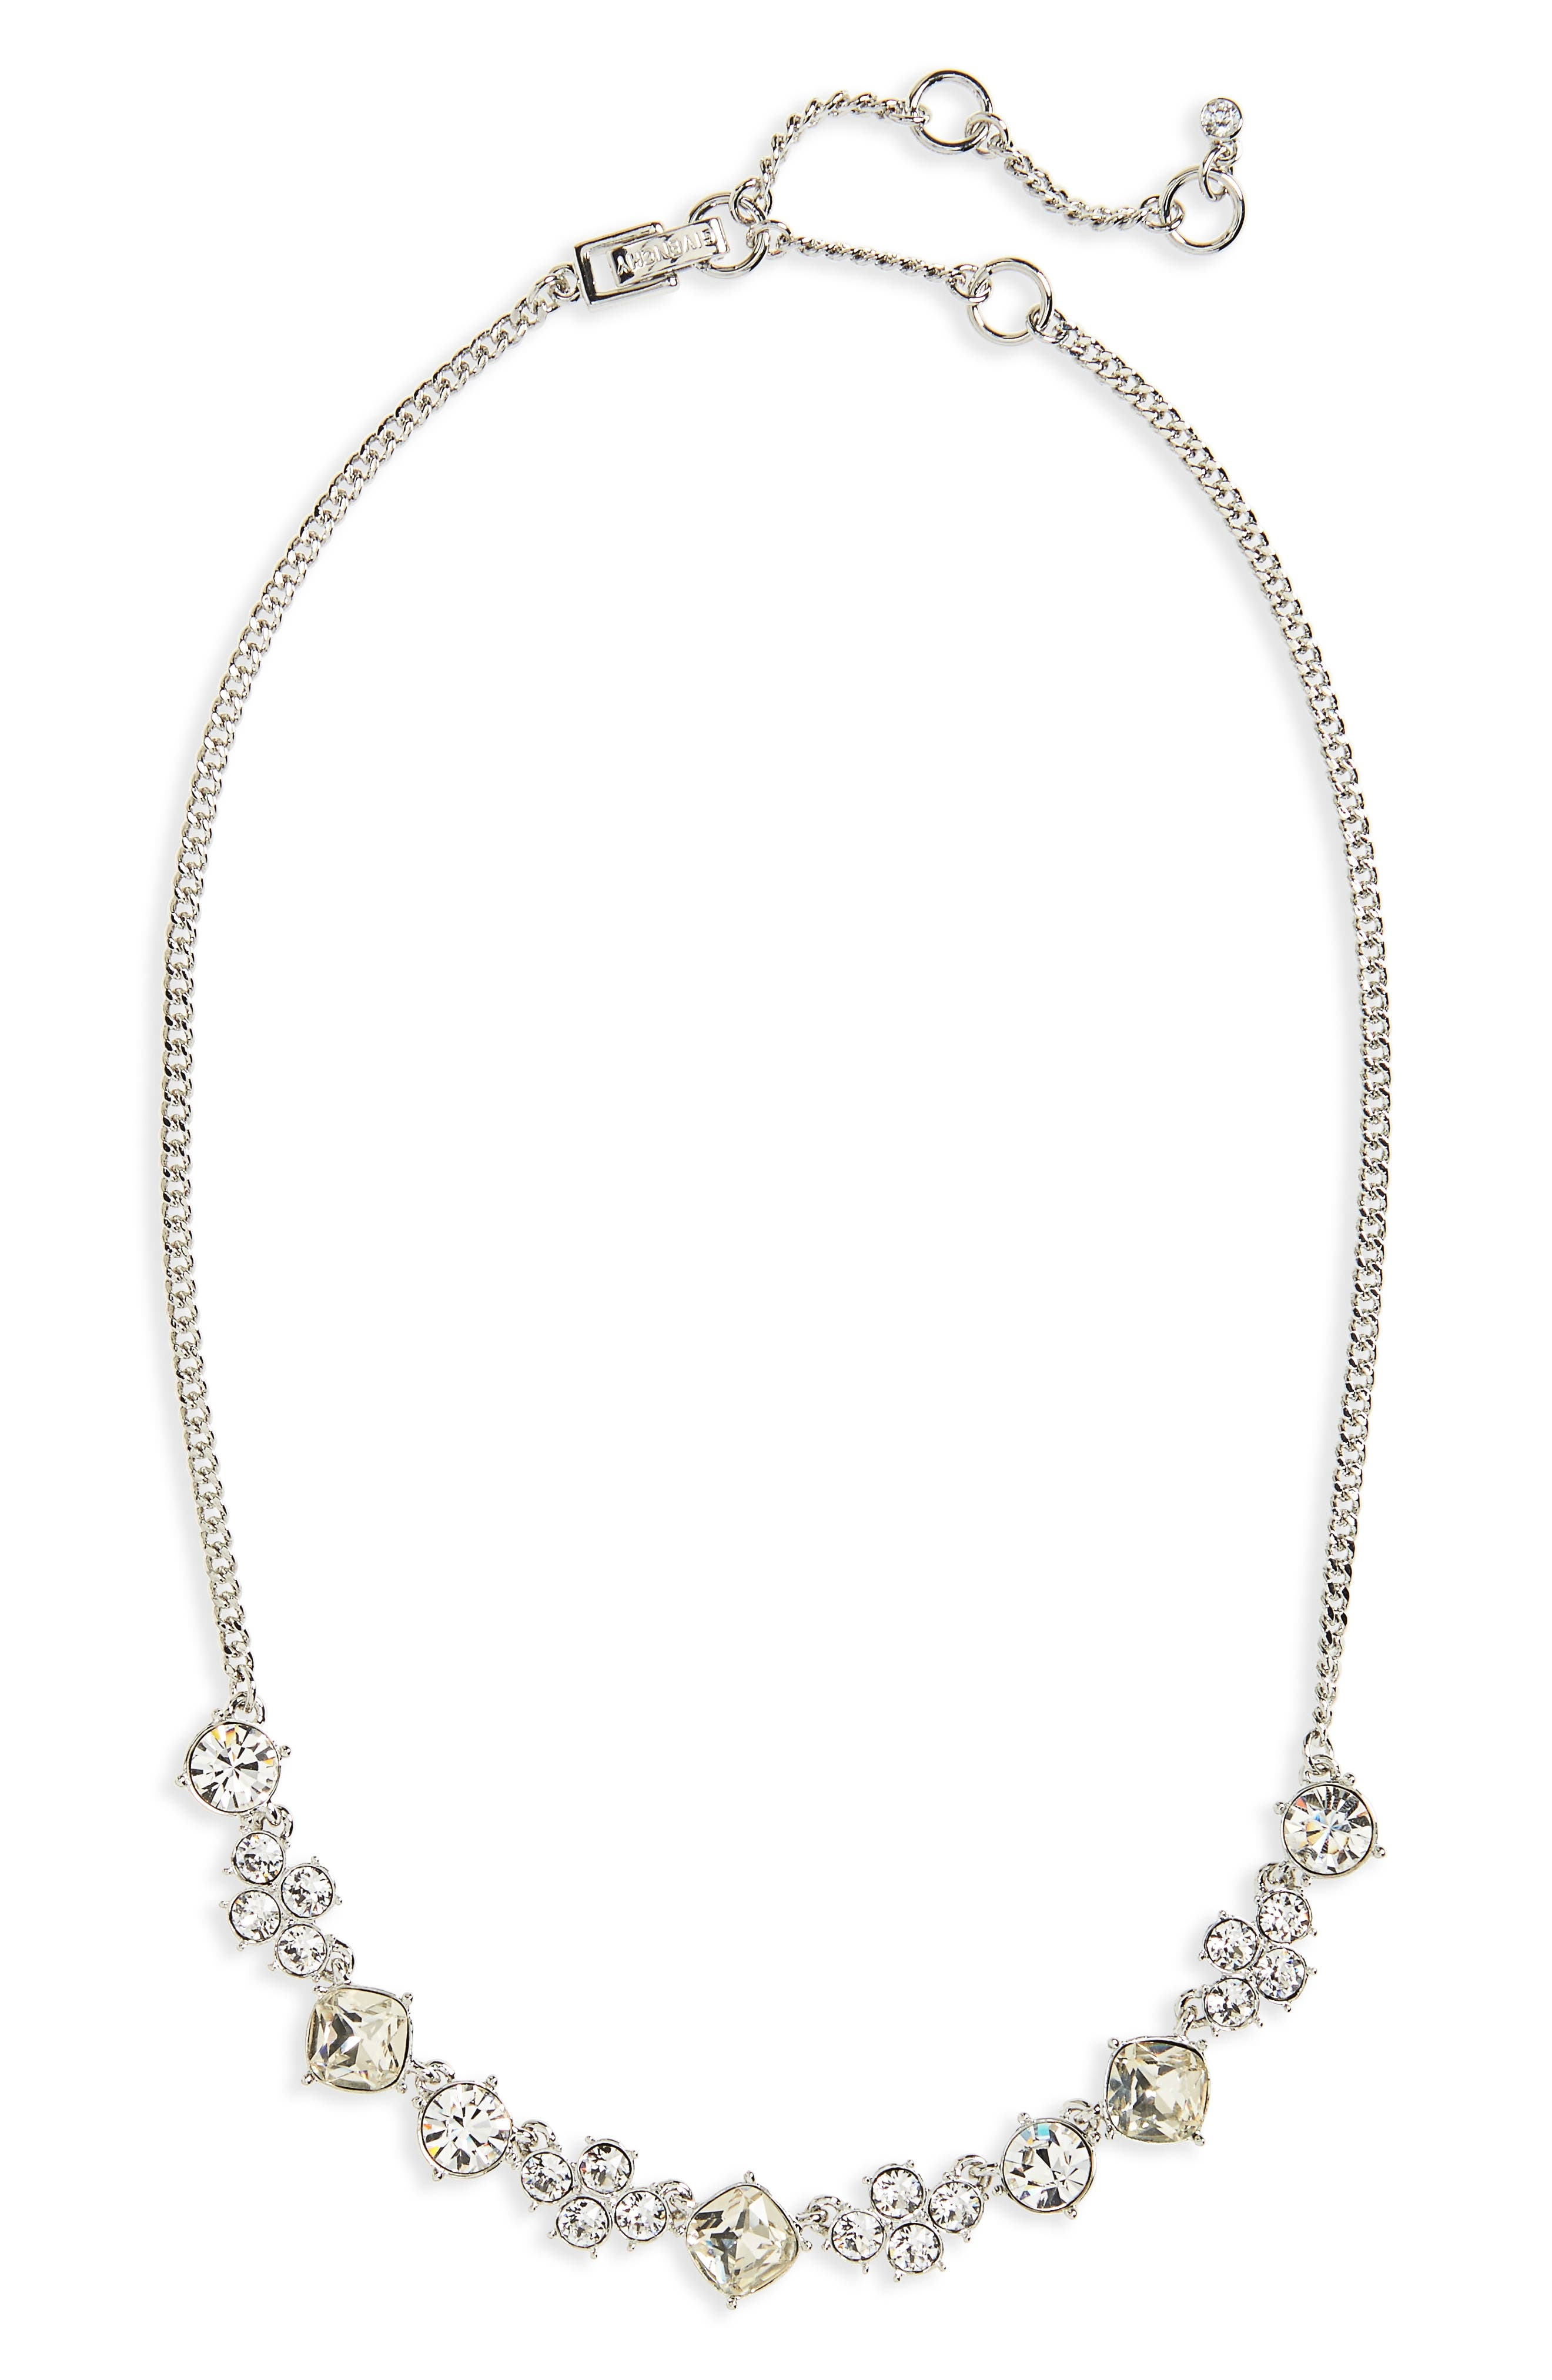 Devon Frontal Necklace,                             Main thumbnail 1, color,                             Clear / Silver